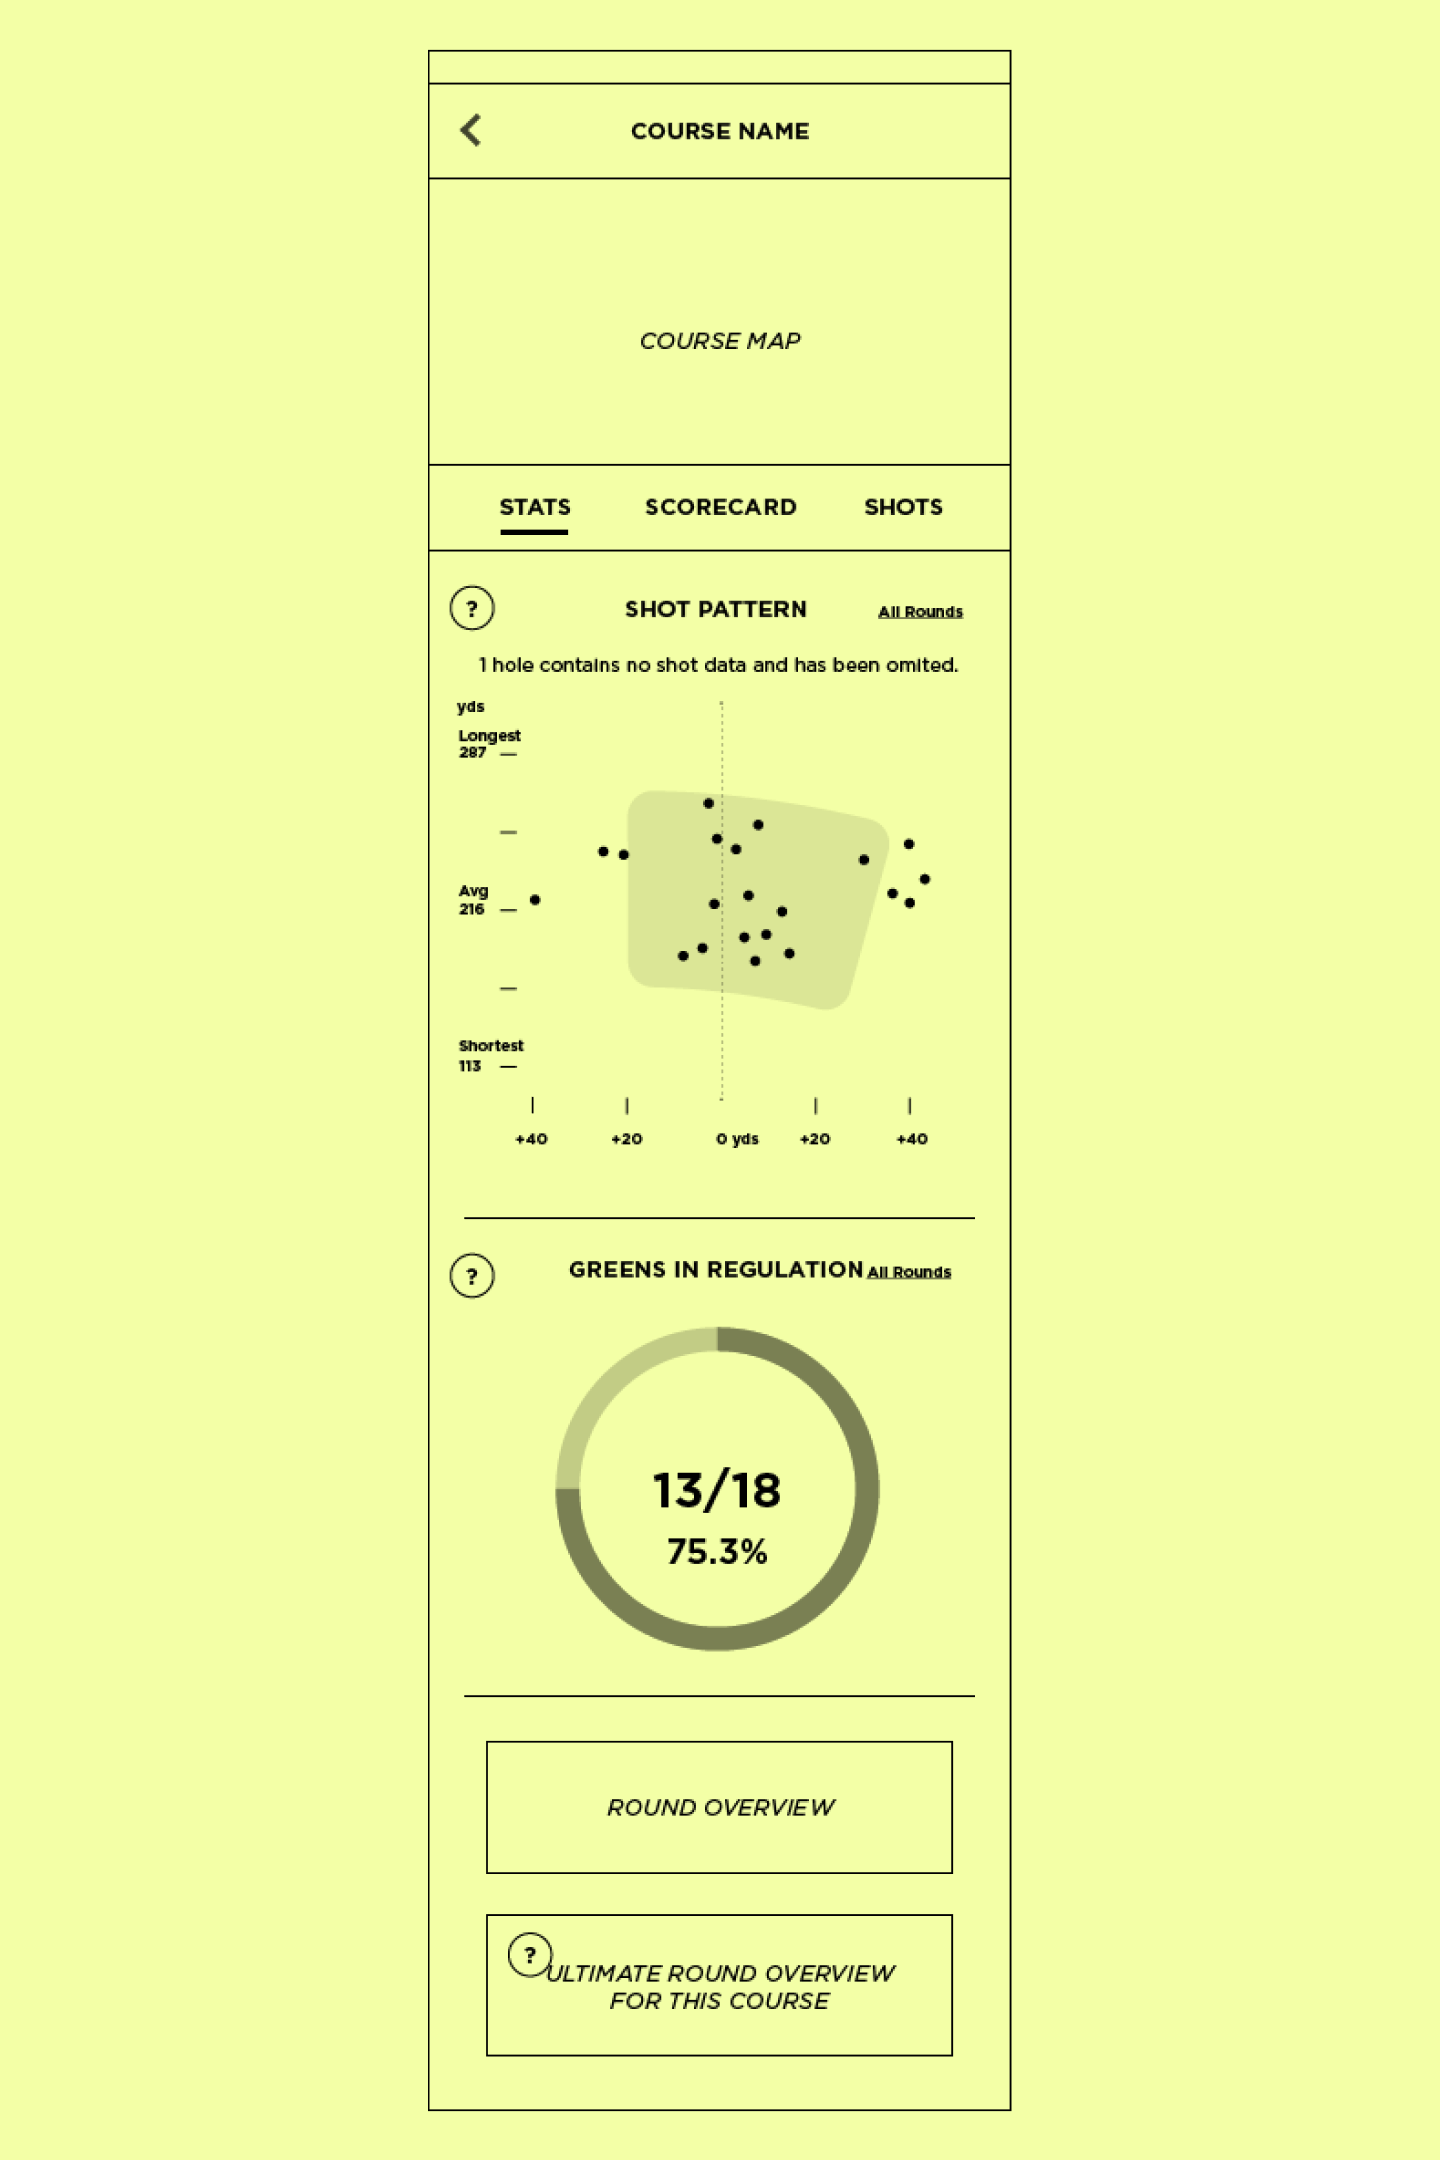 wire_4_stats